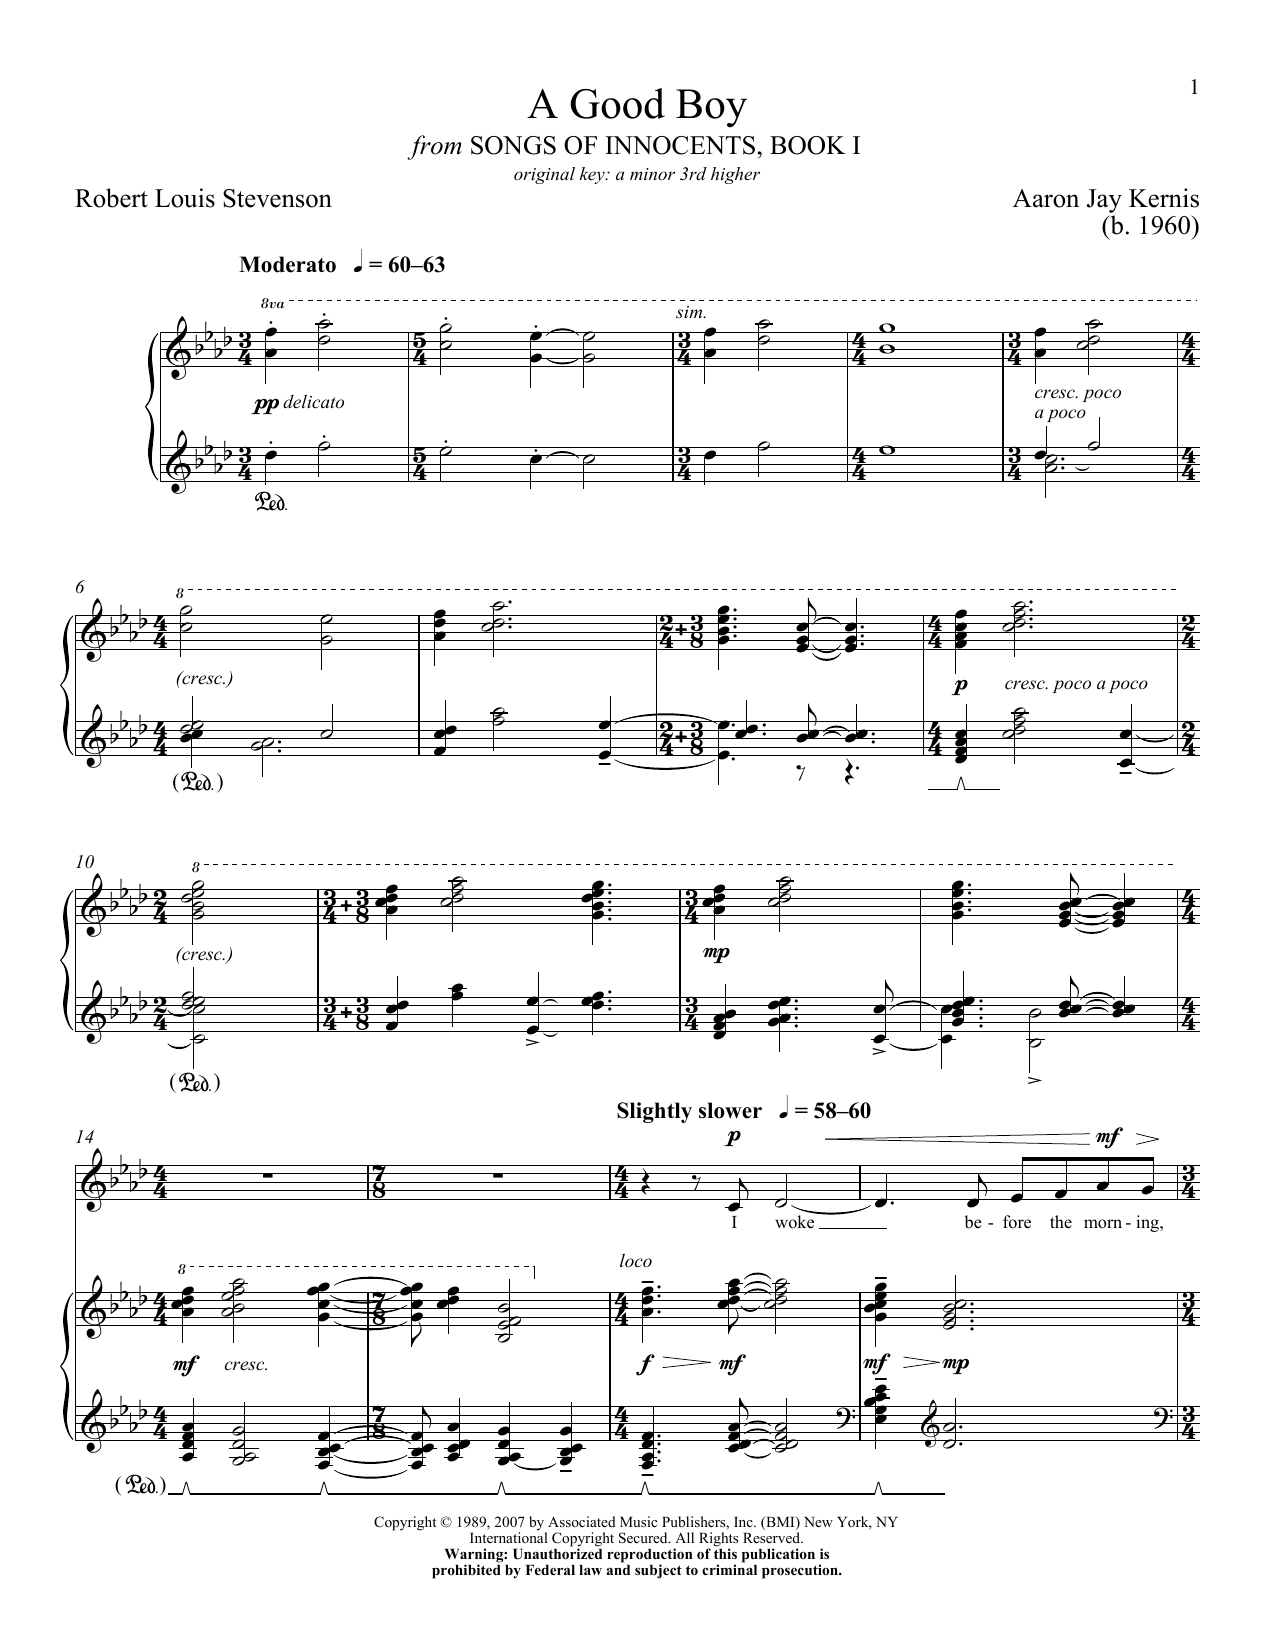 Aaron Jay Kernis A Good Boy sheet music notes and chords. Download Printable PDF.